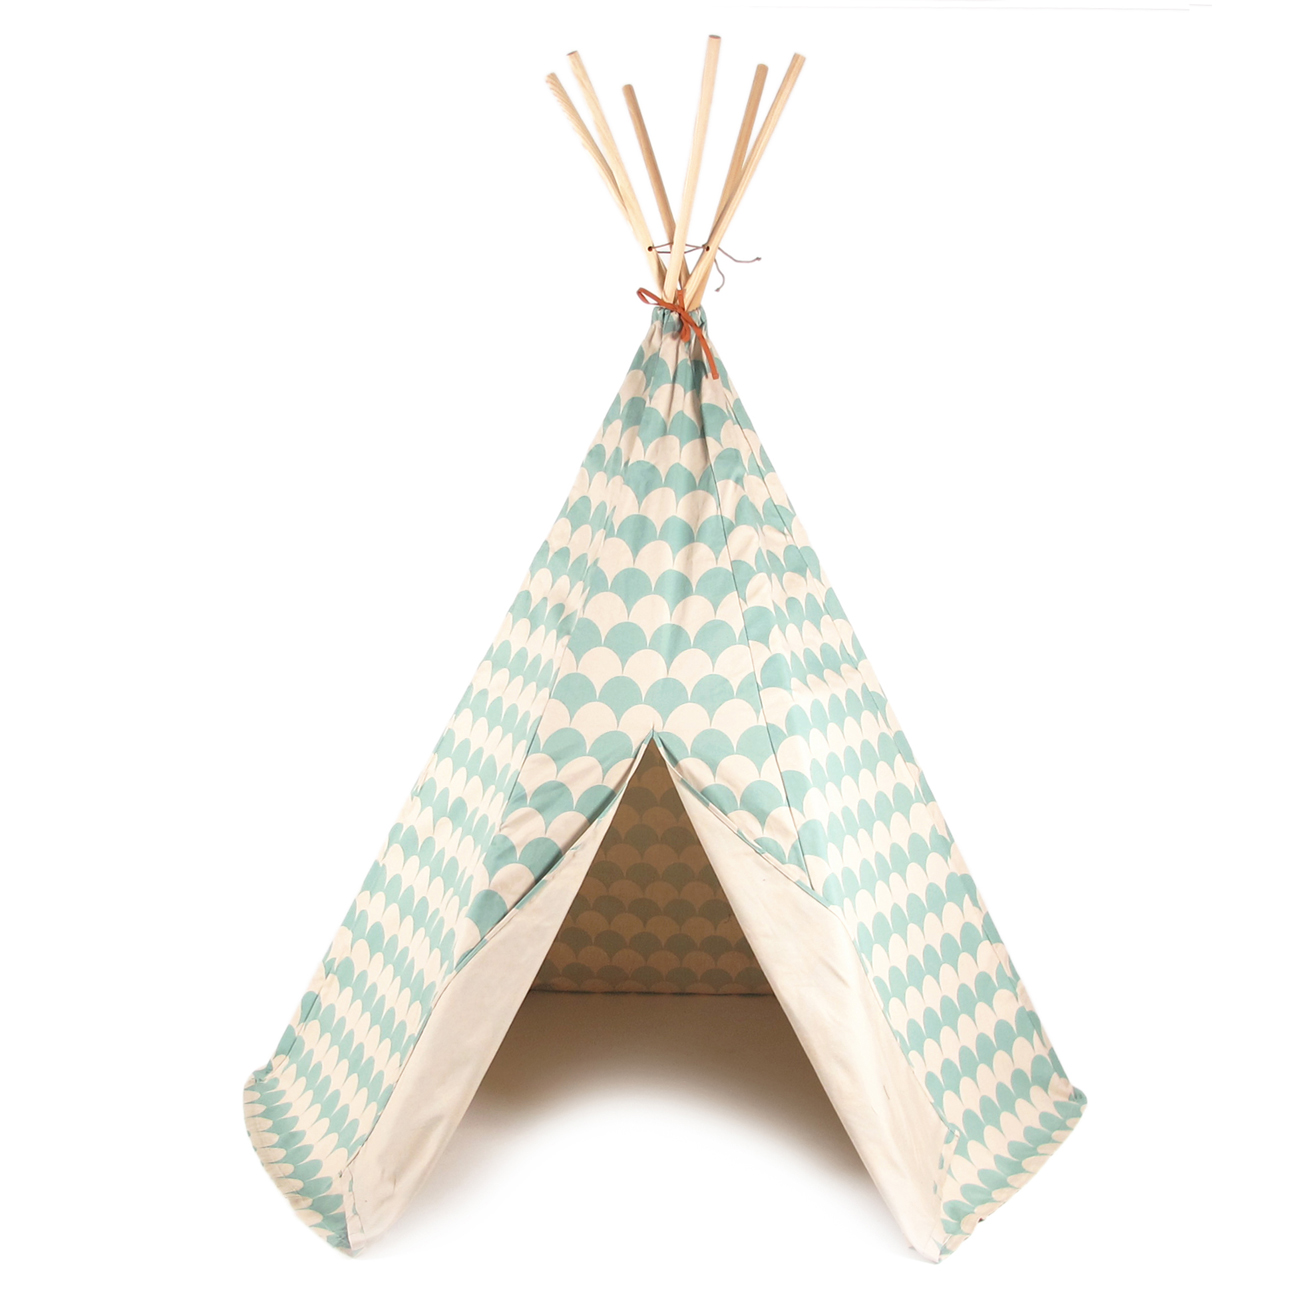 tipi arizona ecailles vert tropical nobodinoz pour chambre enfant les enfants du design. Black Bedroom Furniture Sets. Home Design Ideas